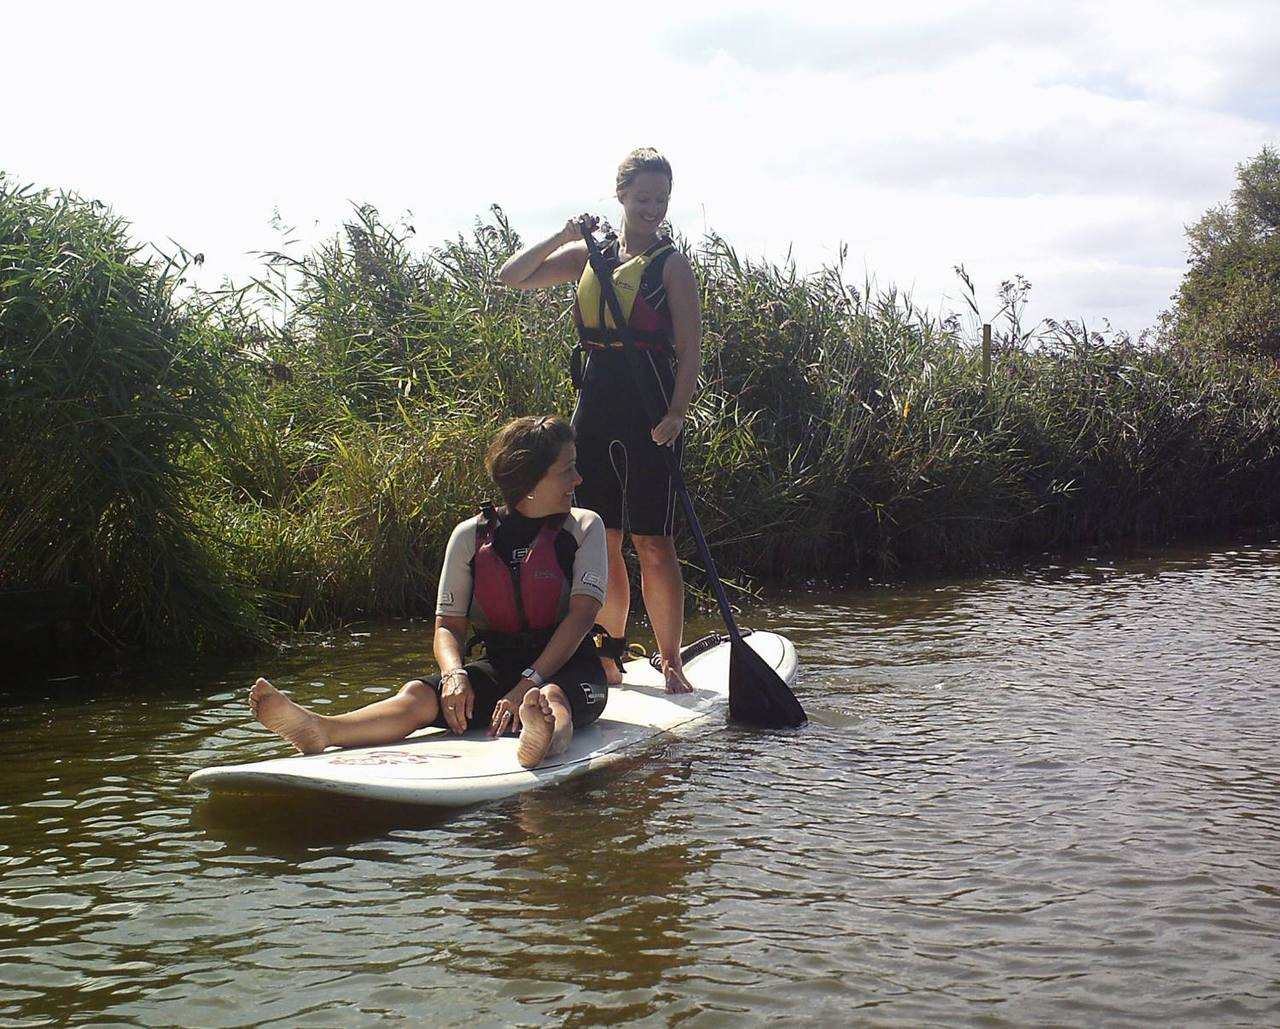 Paddleboarding at Martham Boats